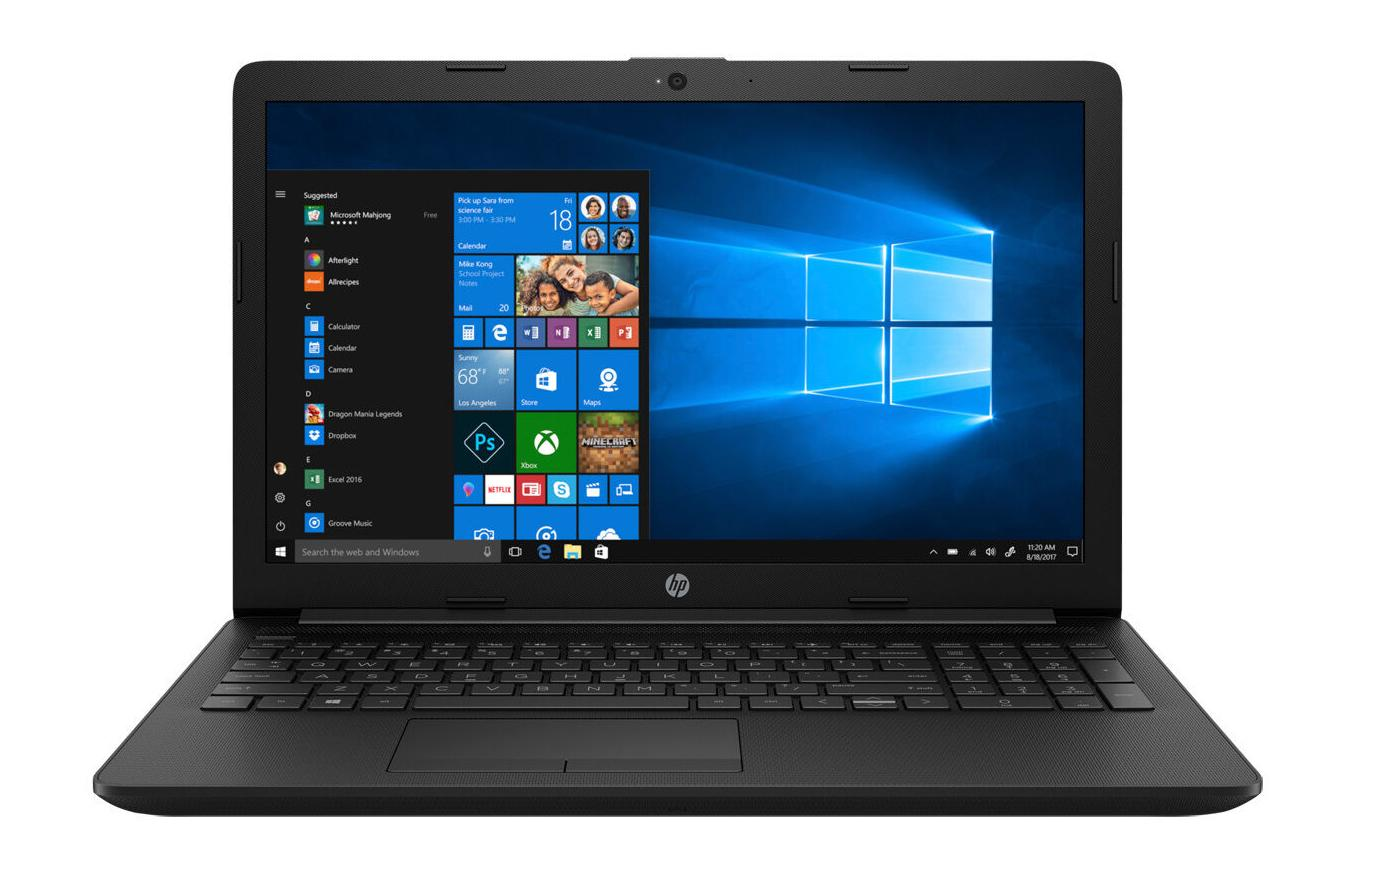 Hewlett Packard (HP) 15-db1002ng 15,6 Full HD, AMD Ryzen 3 3200U Dual-Core, 8GB DDR4, 128GB SSD + 1TB HDD, DVD, Windows 10